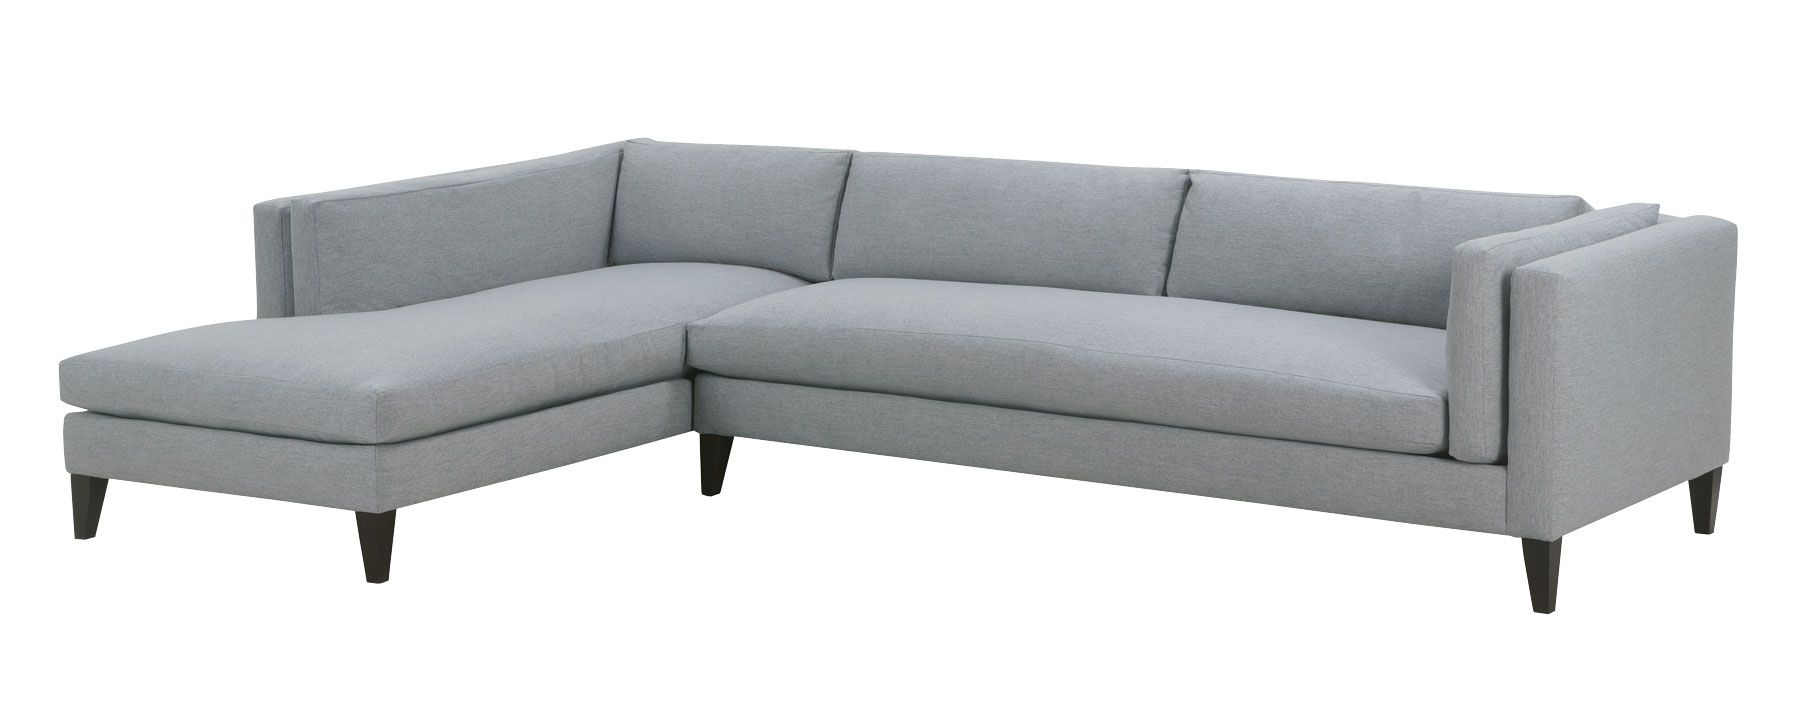 Yates Designer Style Bench Seat Sectional Fabric Sectional Sofas Sectional Sofa Fabric Sectional Sofas Discount Furniture